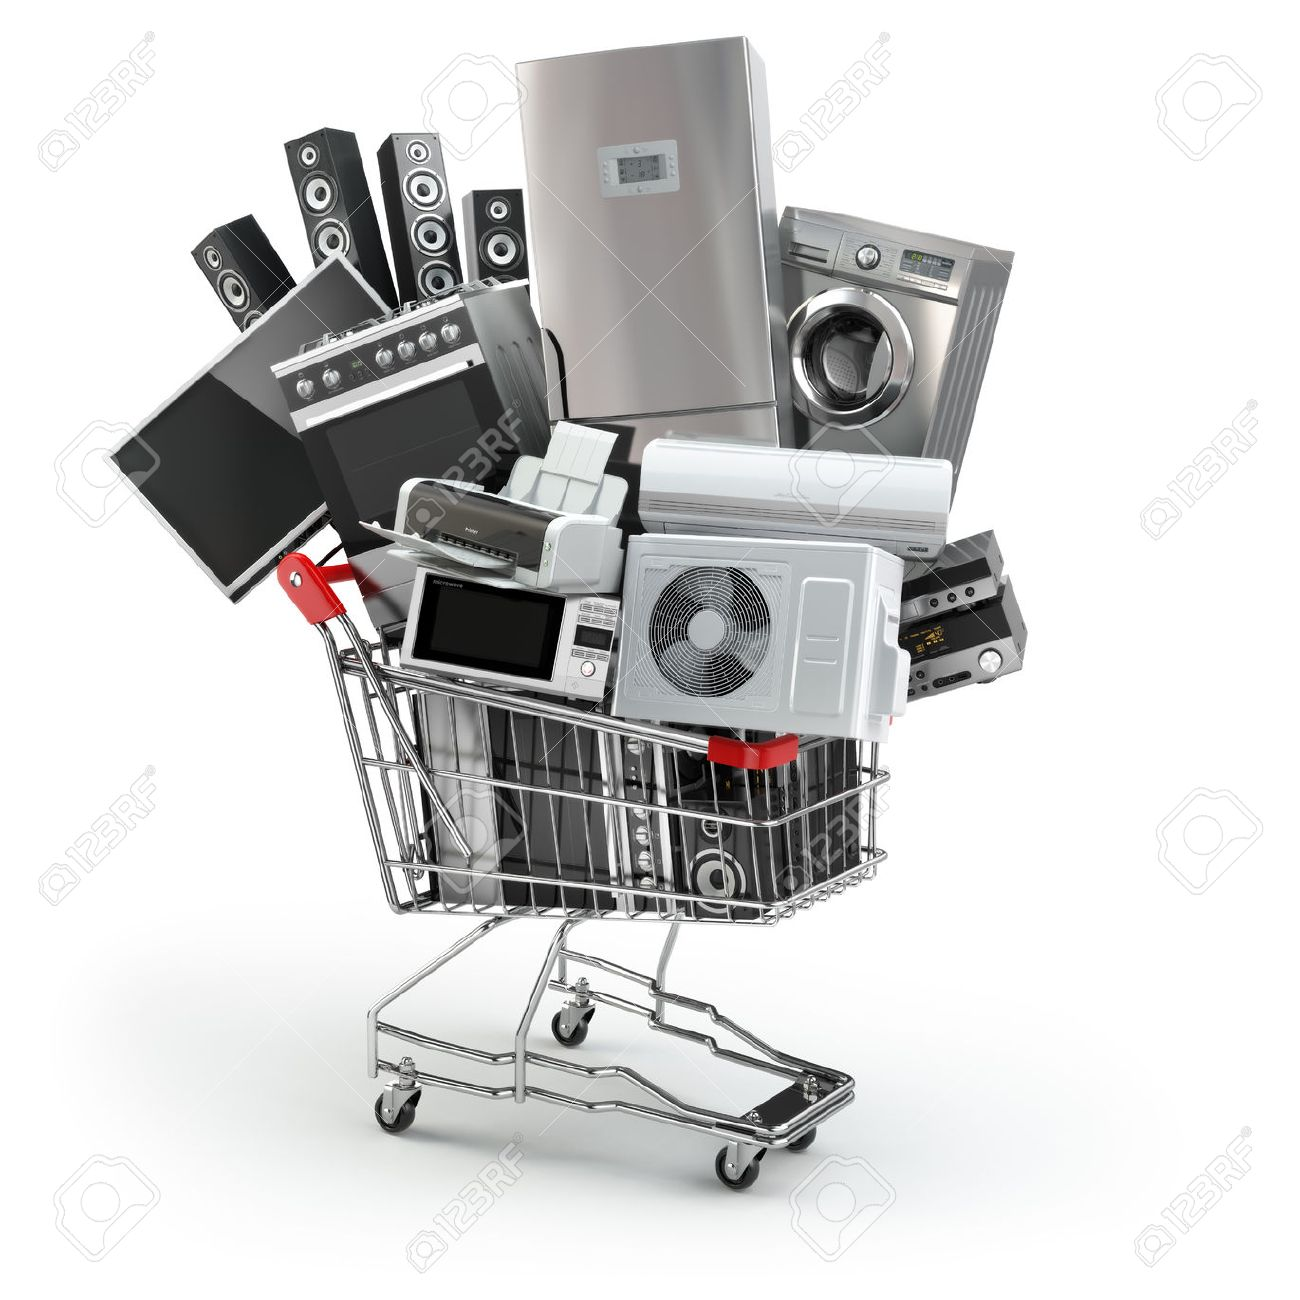 Uncategorized Online Shopping For Kitchen Appliances kitchen appliances set images stock pictures royalty free home in the shopping cart e commerce or online